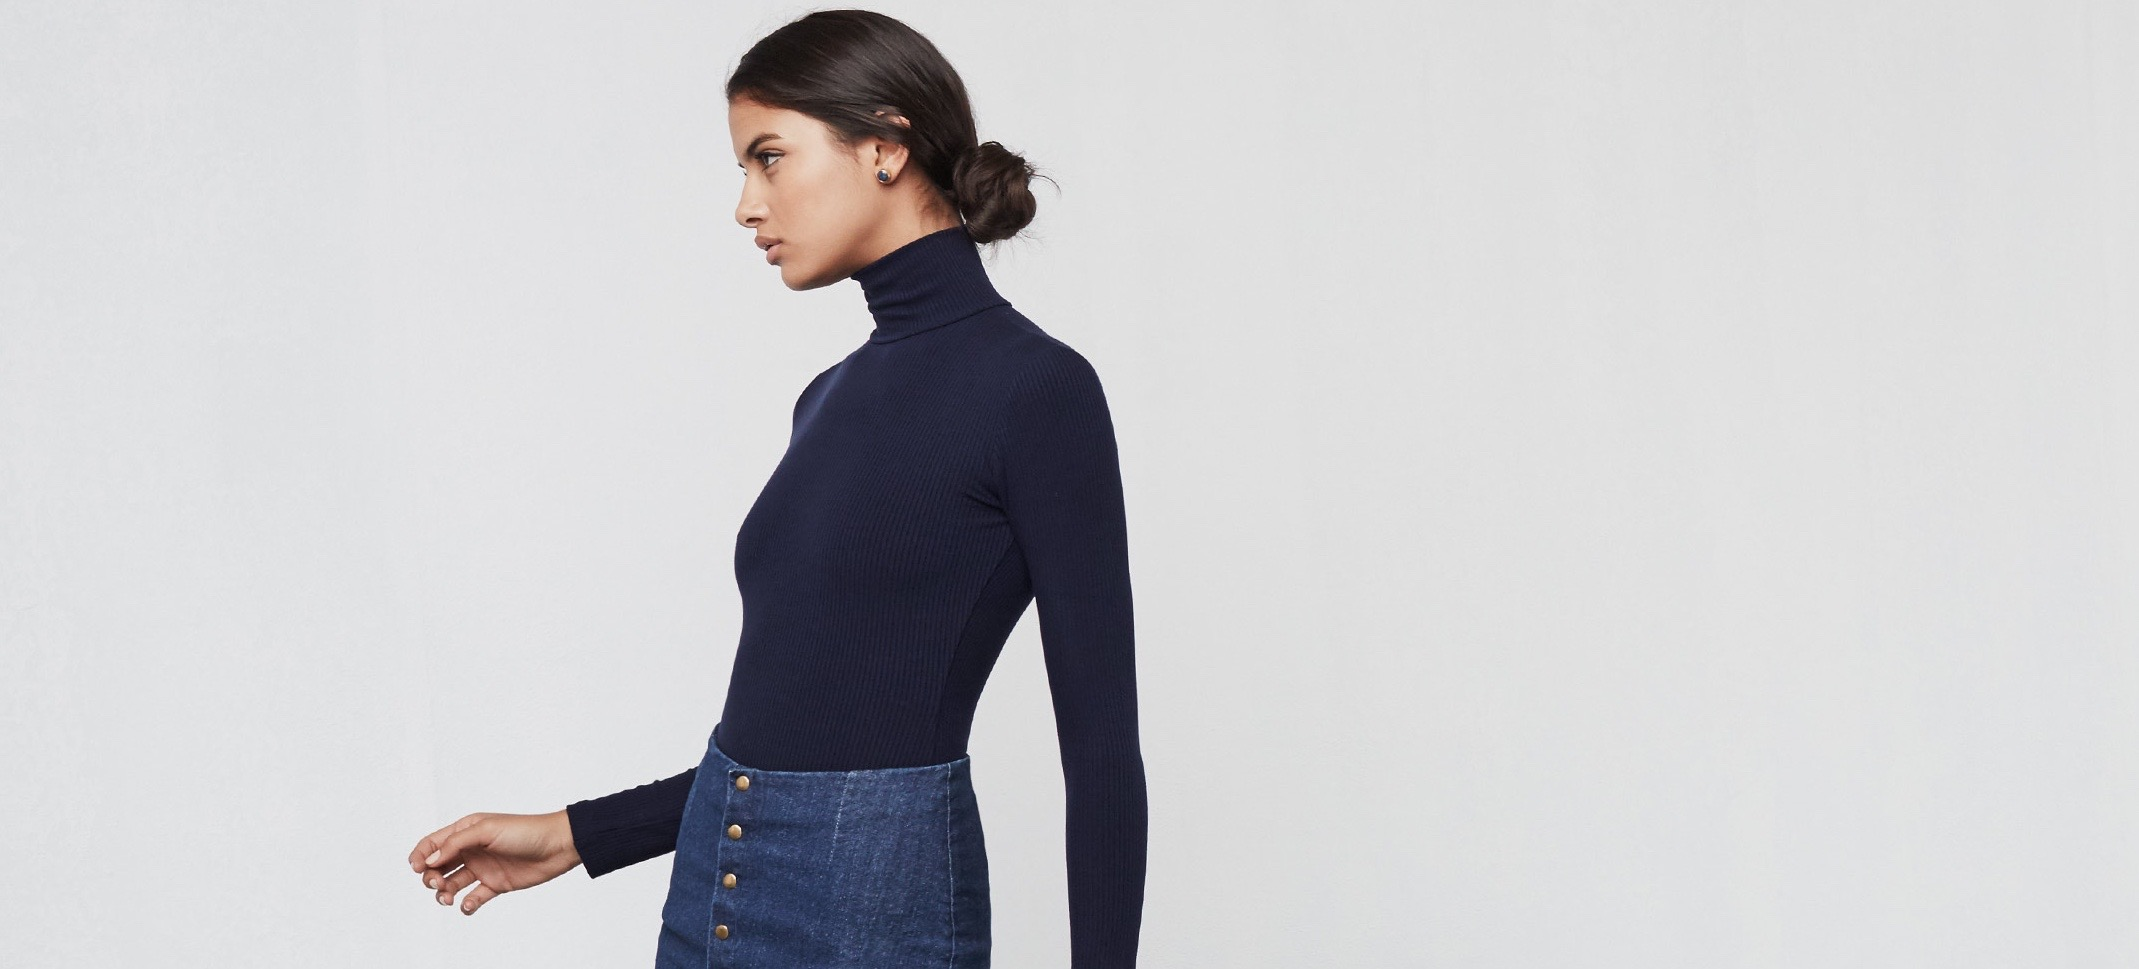 The Secret To Looking Slim In A Turtleneck